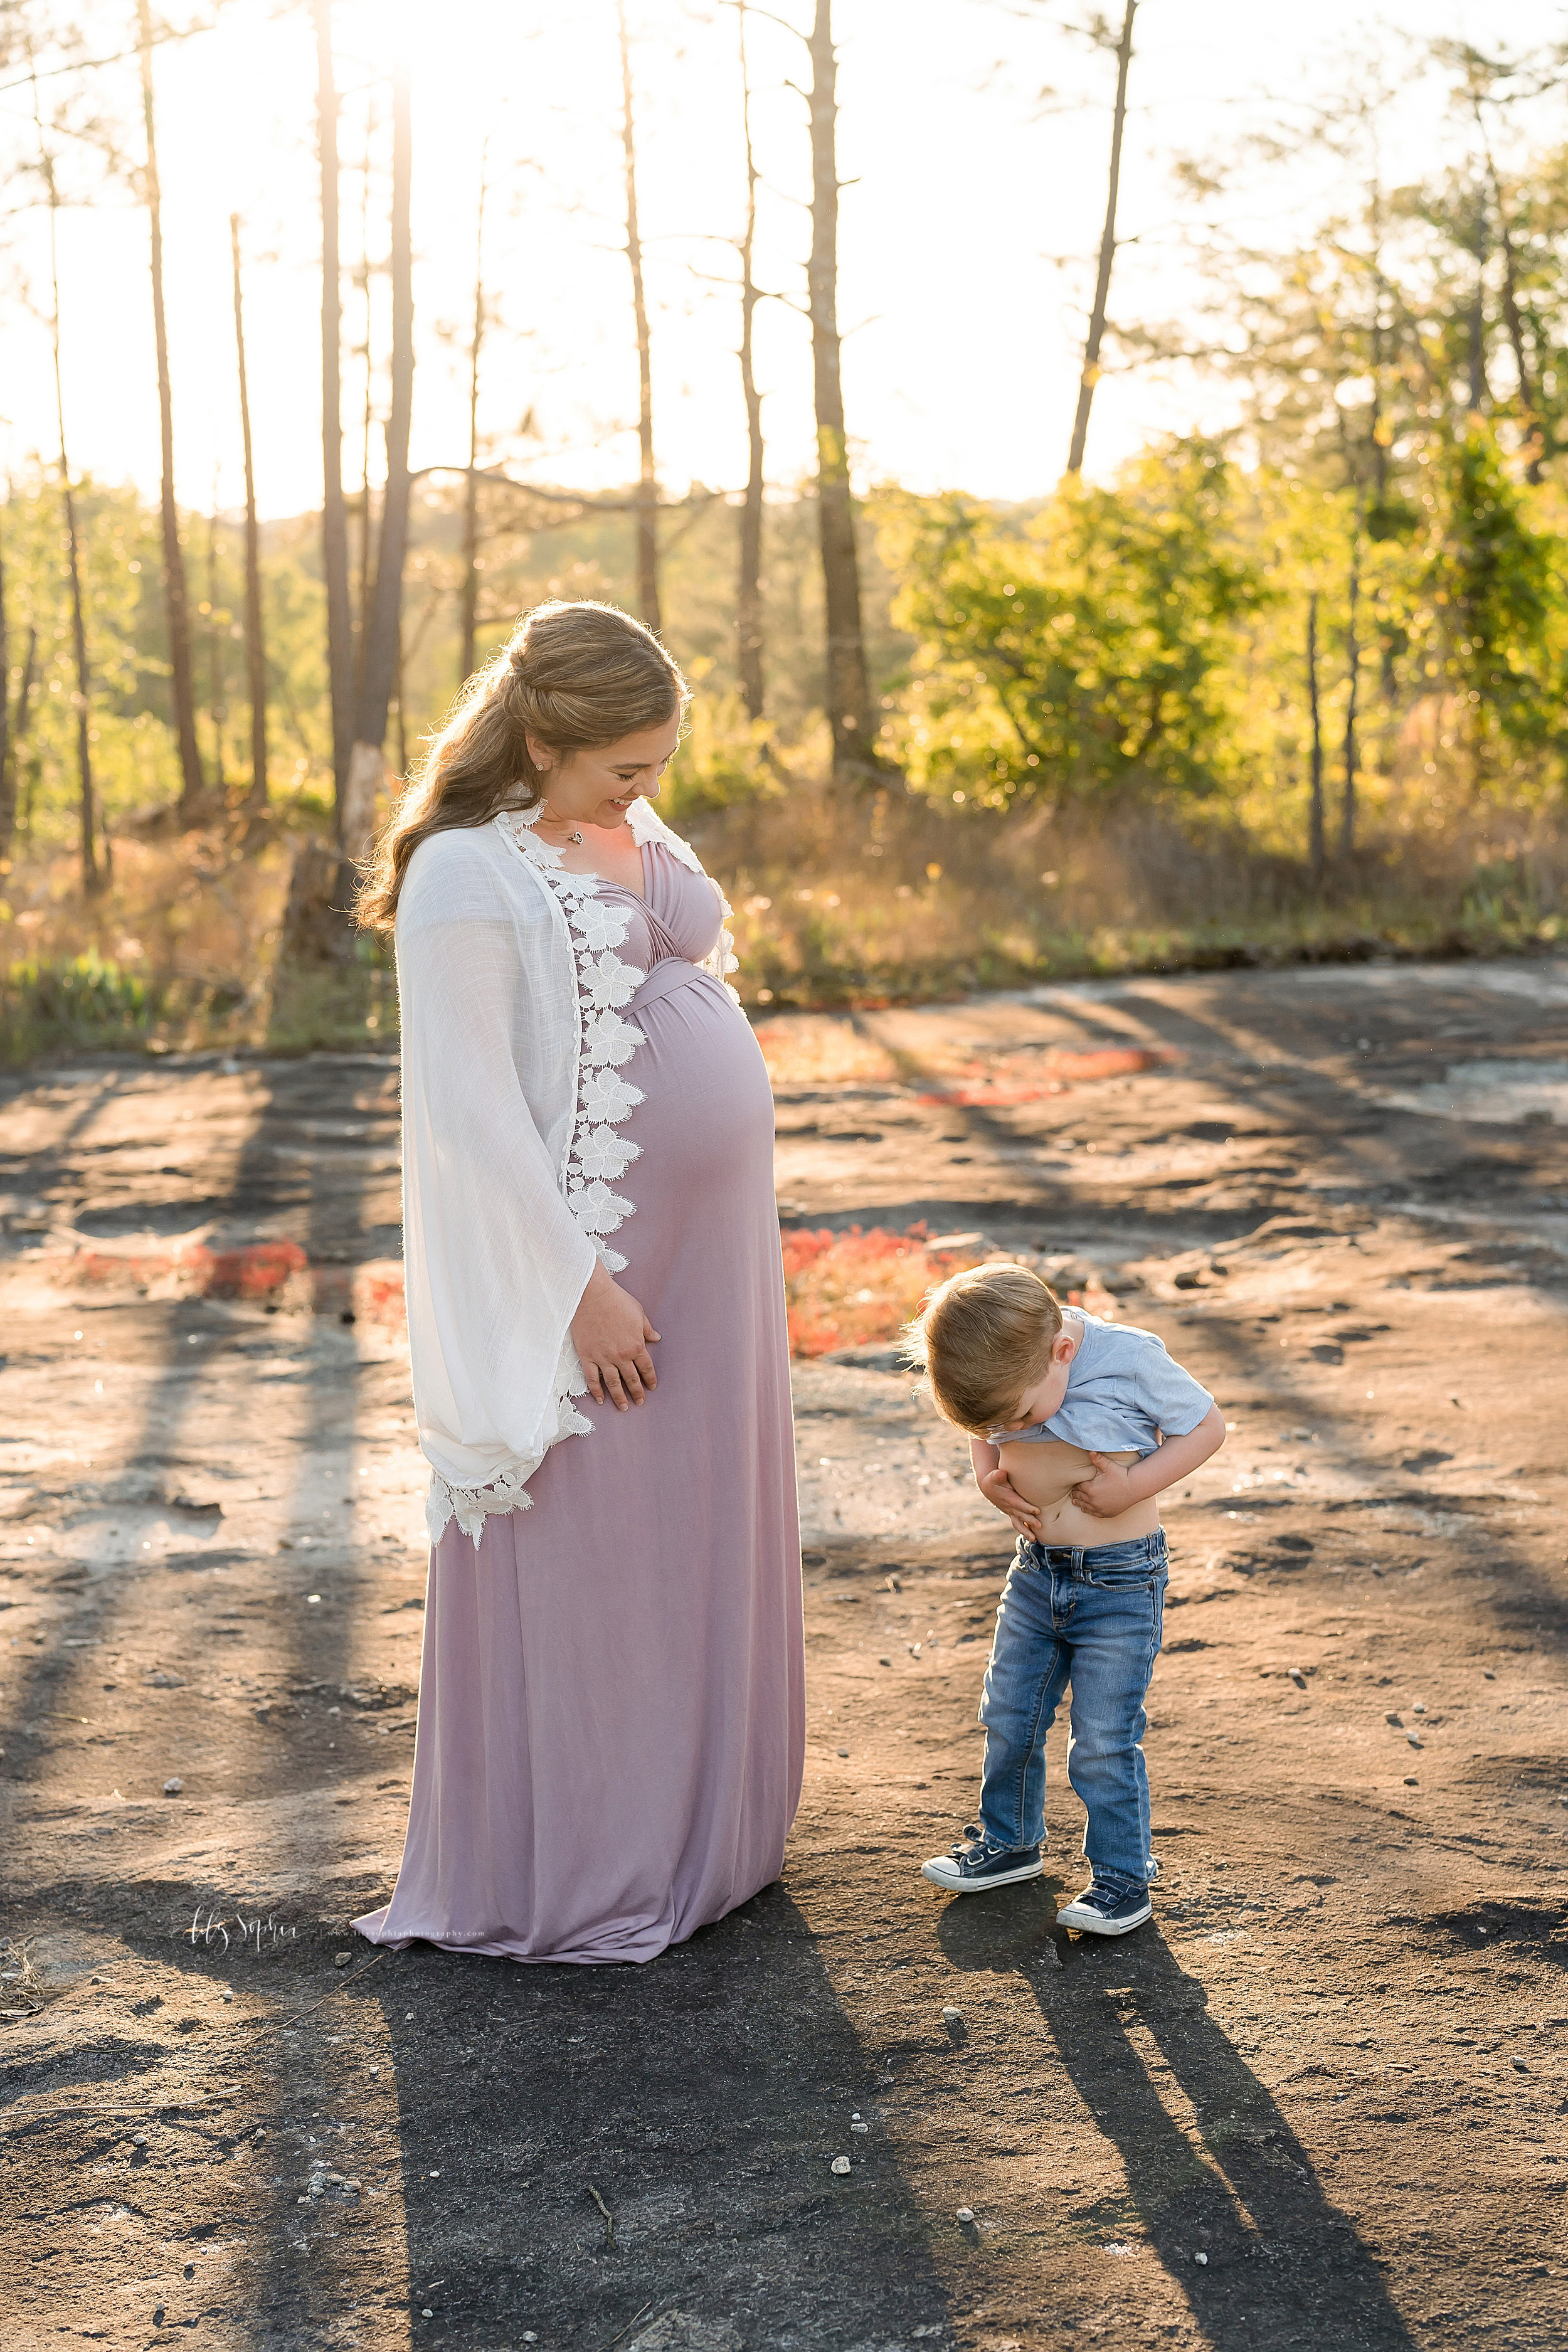 atlanta-brookhaven-decatur-candler-park-sandy-springs-buckhead-virginia-highlands-west-end-decatur-lily-sophia-photography-family-big-brother-expecting-newborn-baby-girl-couples-family-maternity-outdoor-session_1584.jpg